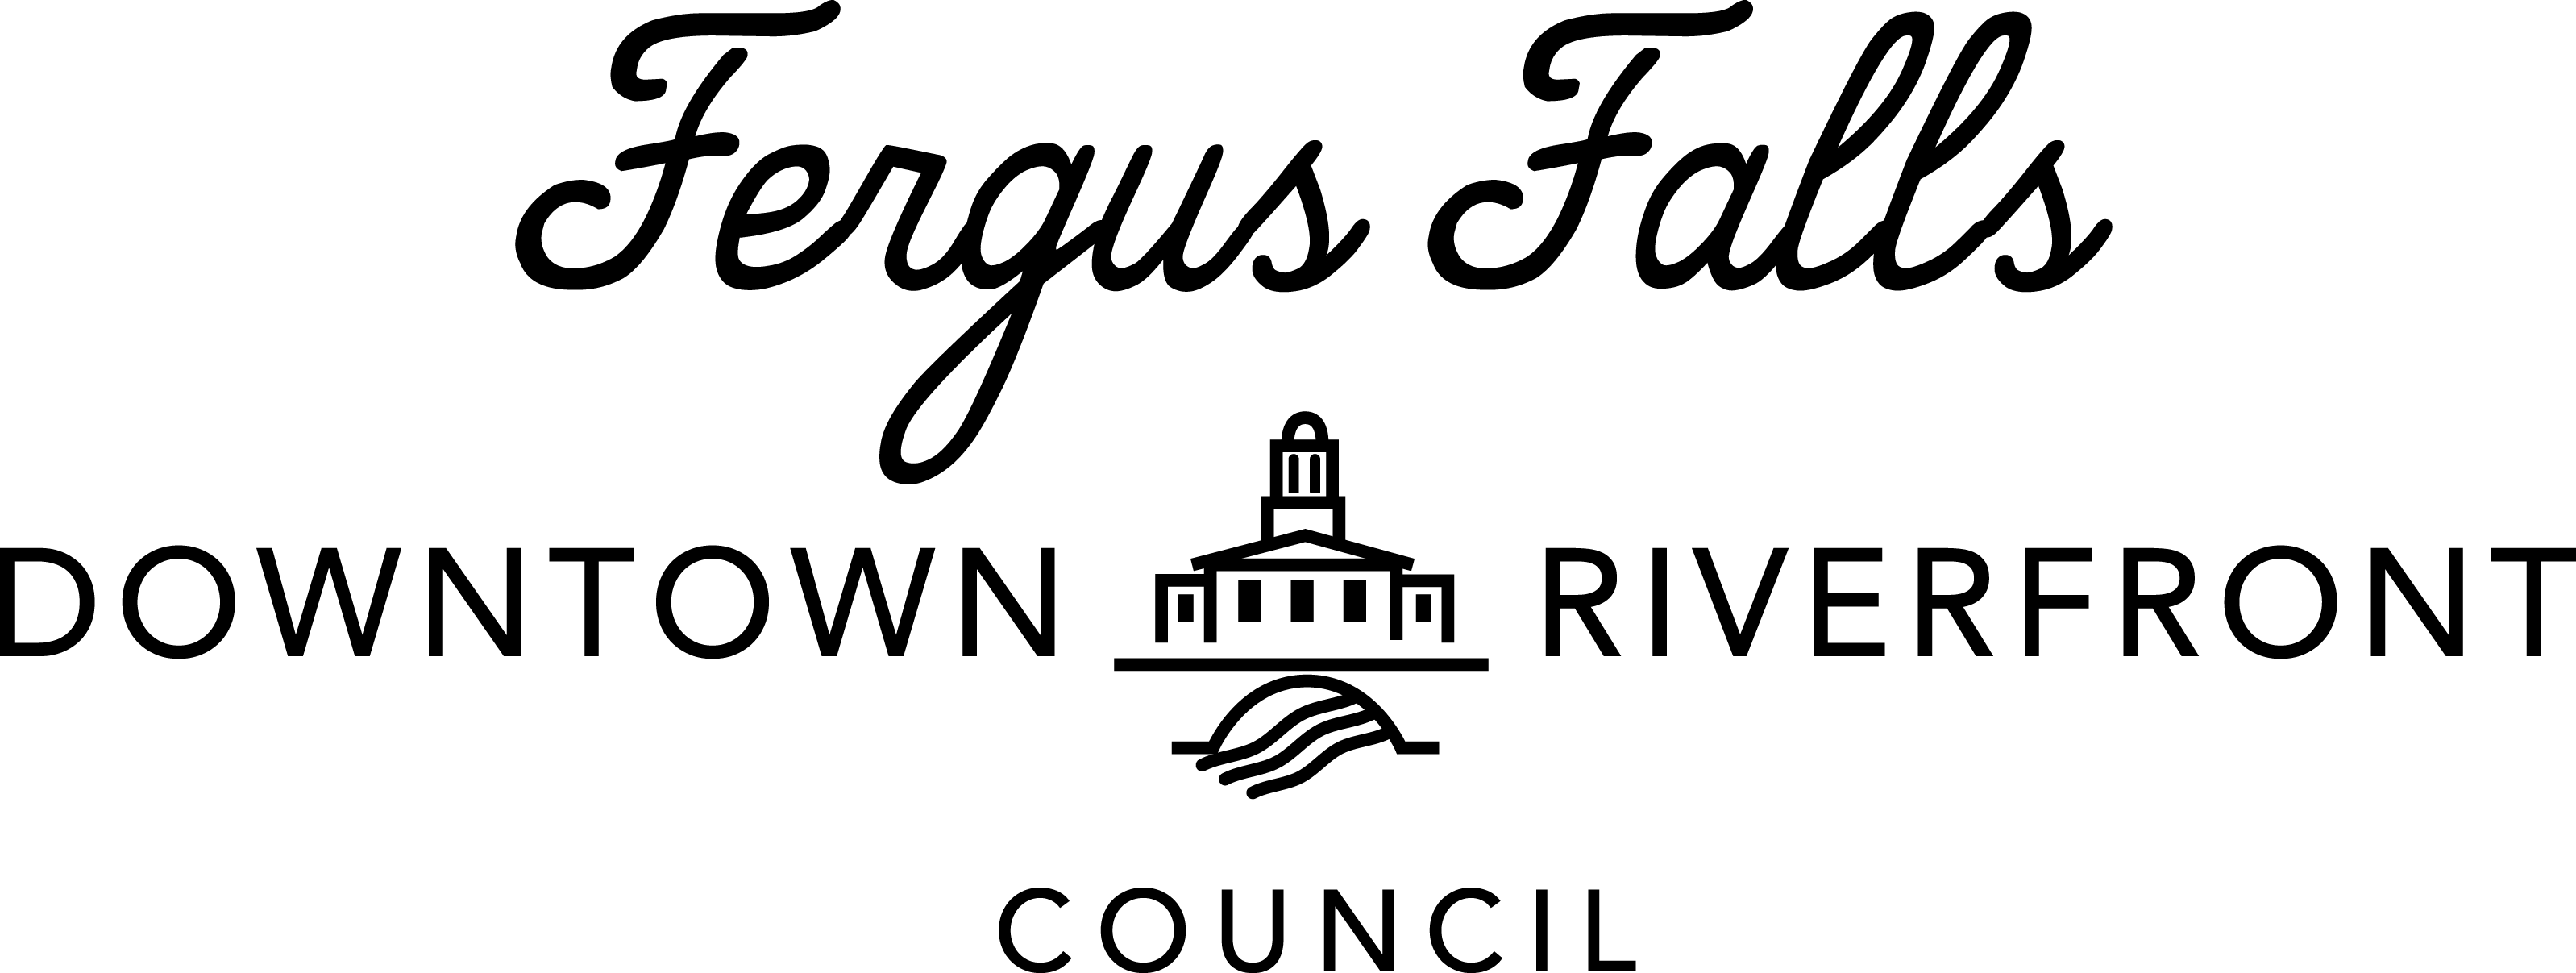 Fergus Falls Downtown Riverfront Council